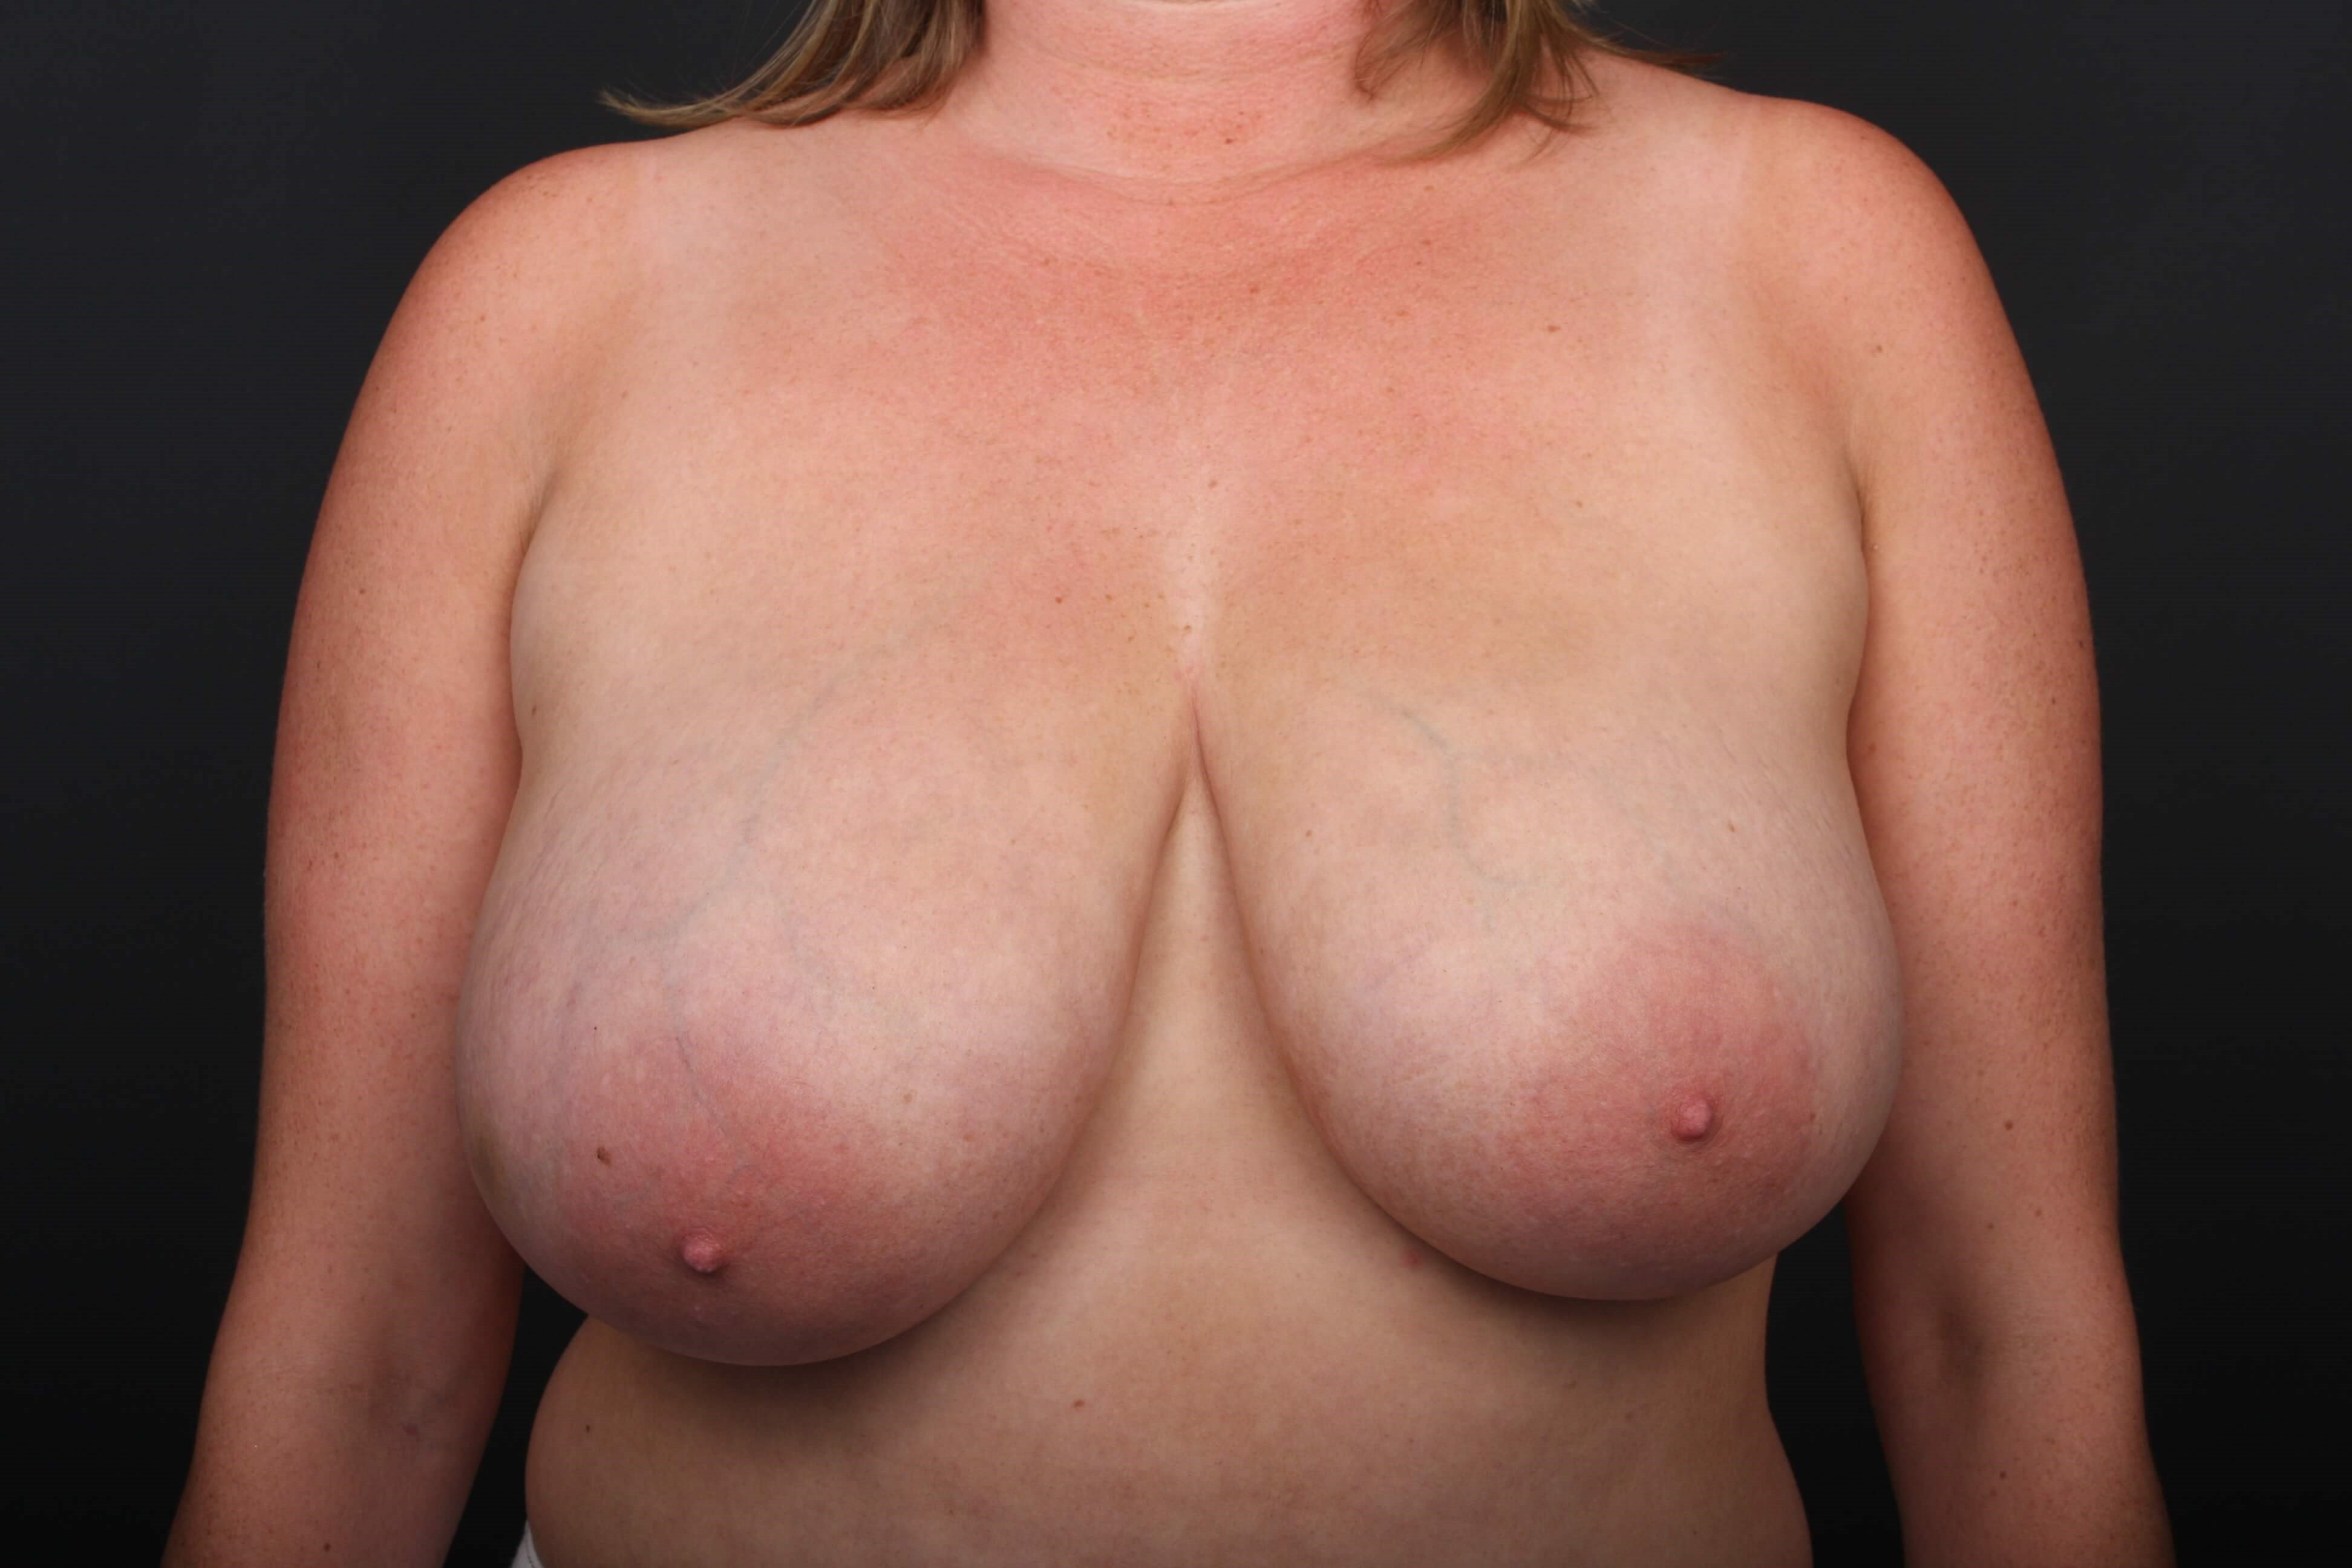 40 y/o breast reduction Before front view